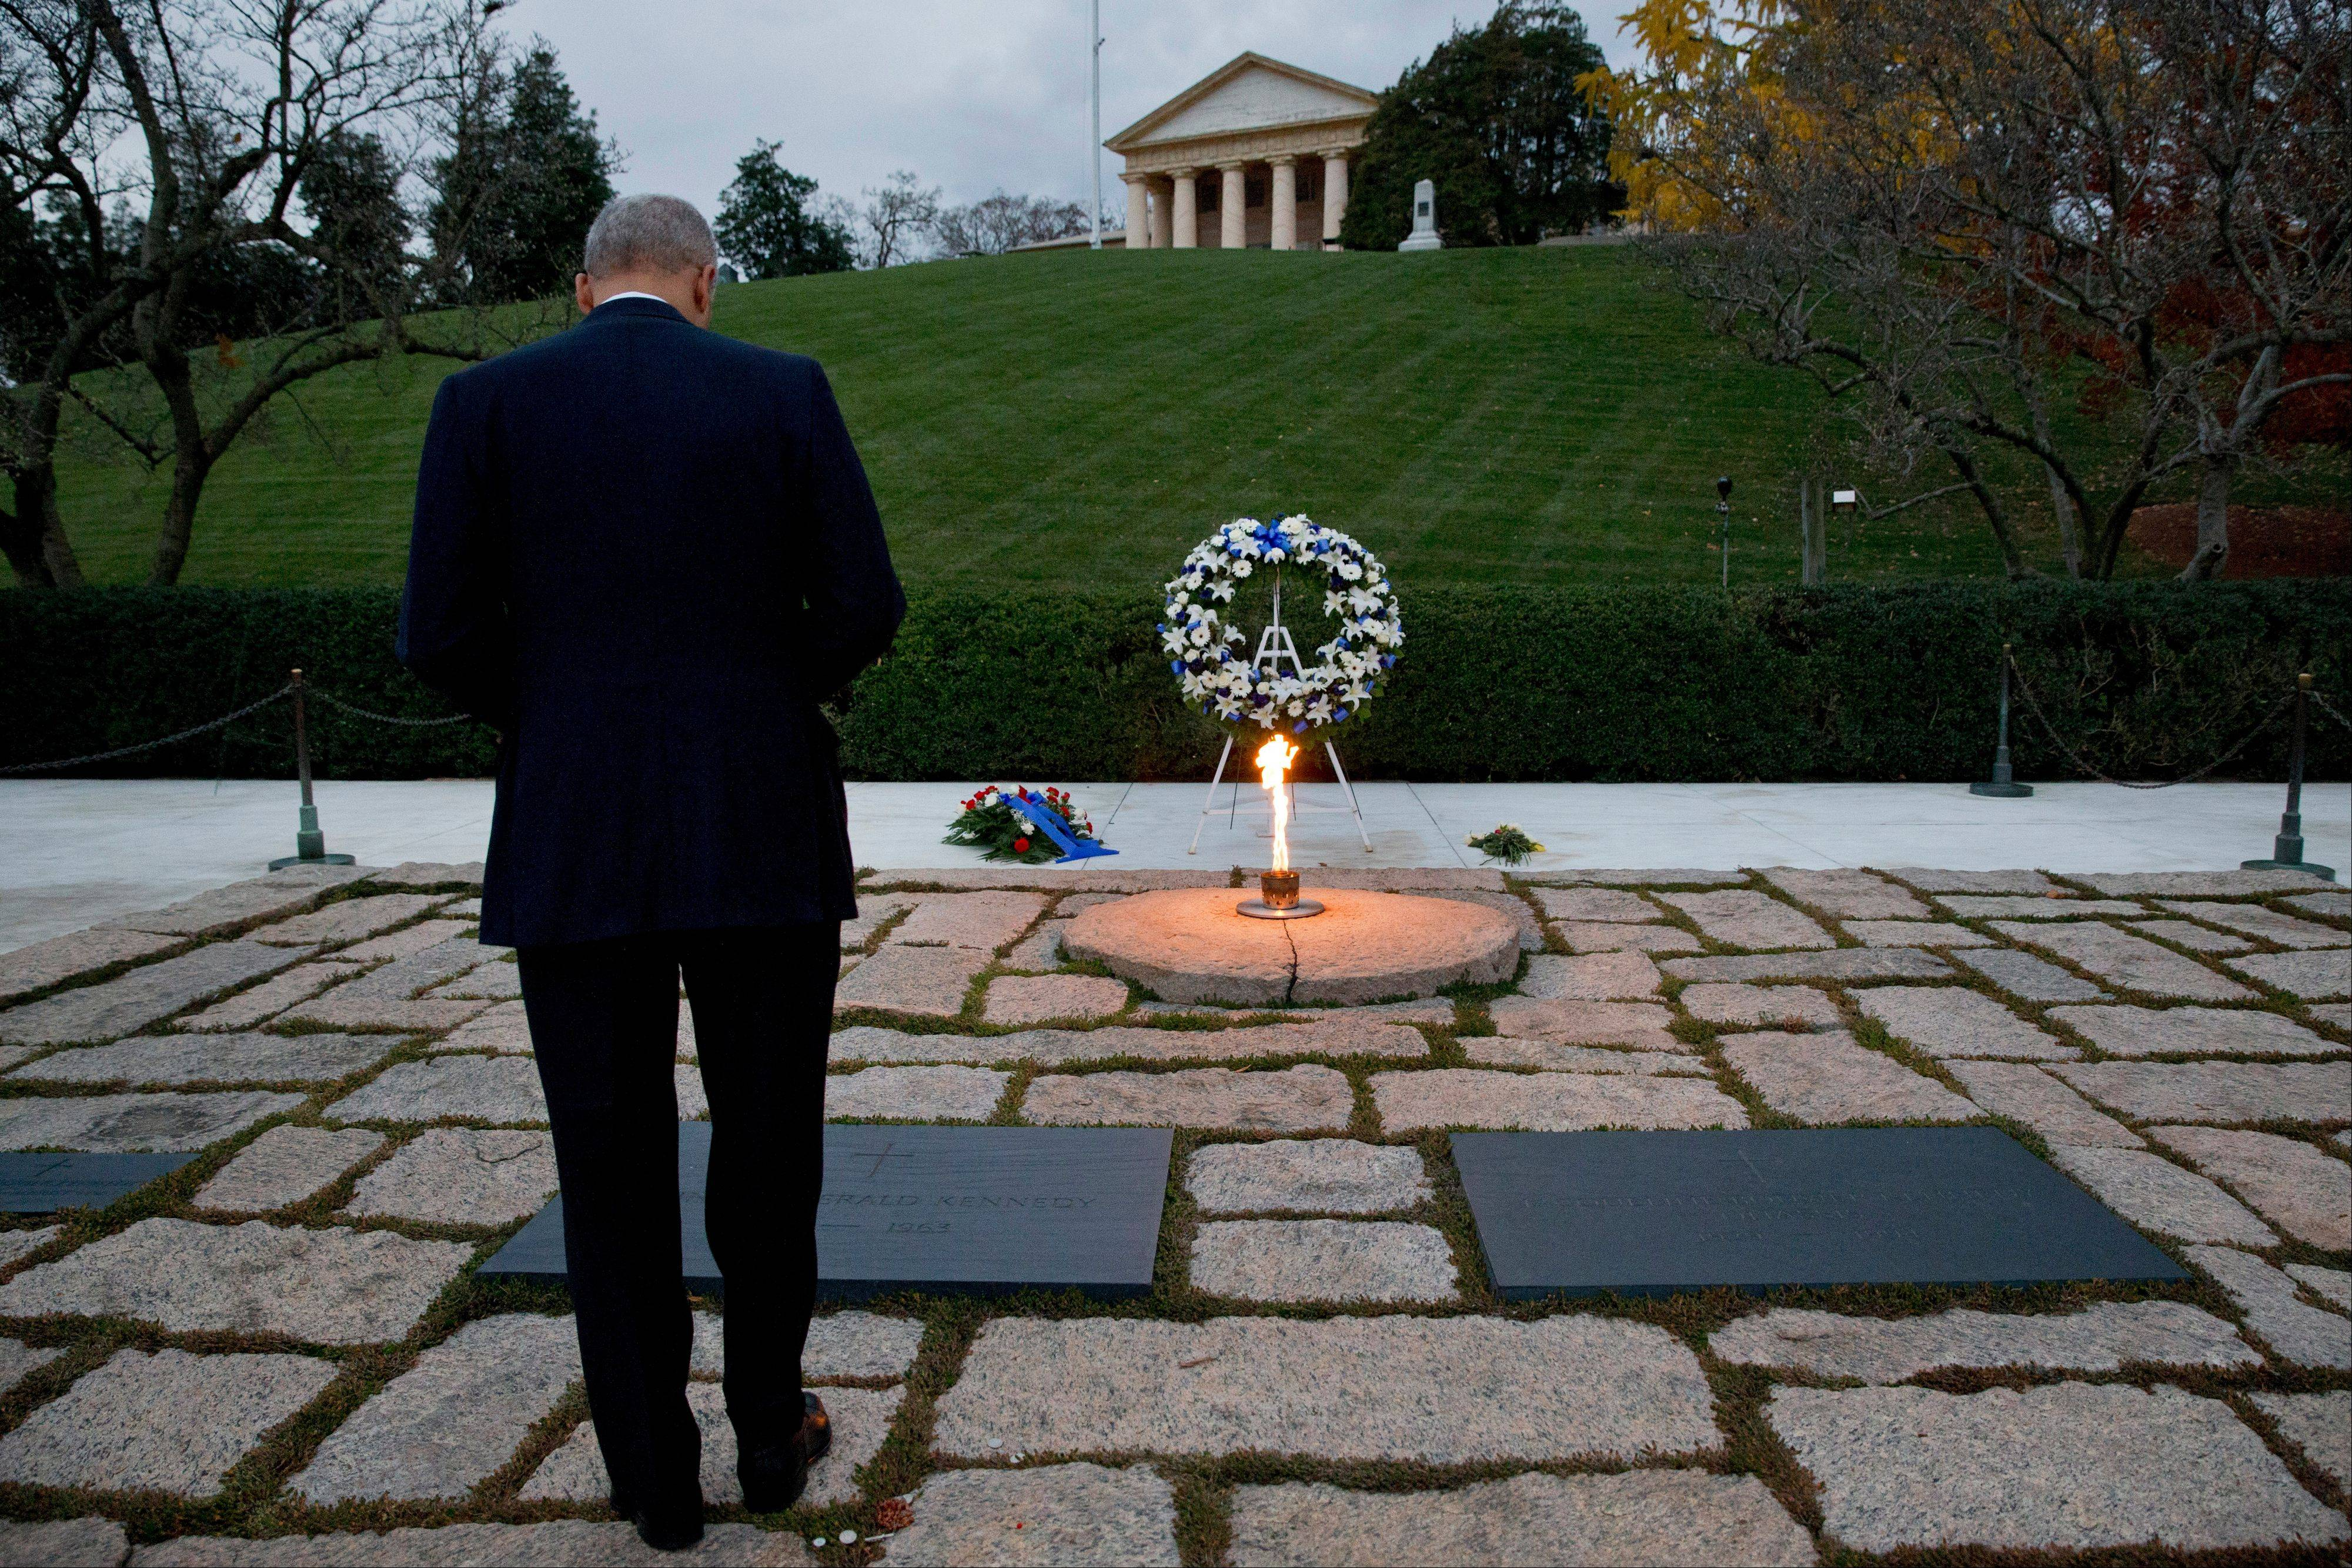 Attorney General Eric Holder pays his respects at the grave of John F. Kennedy at Arlington National Cemetery on Friday, Nov. 22, 2013, on the 50th anniversary of Kennedy's death. Holder has been visiting the grave since his youth.